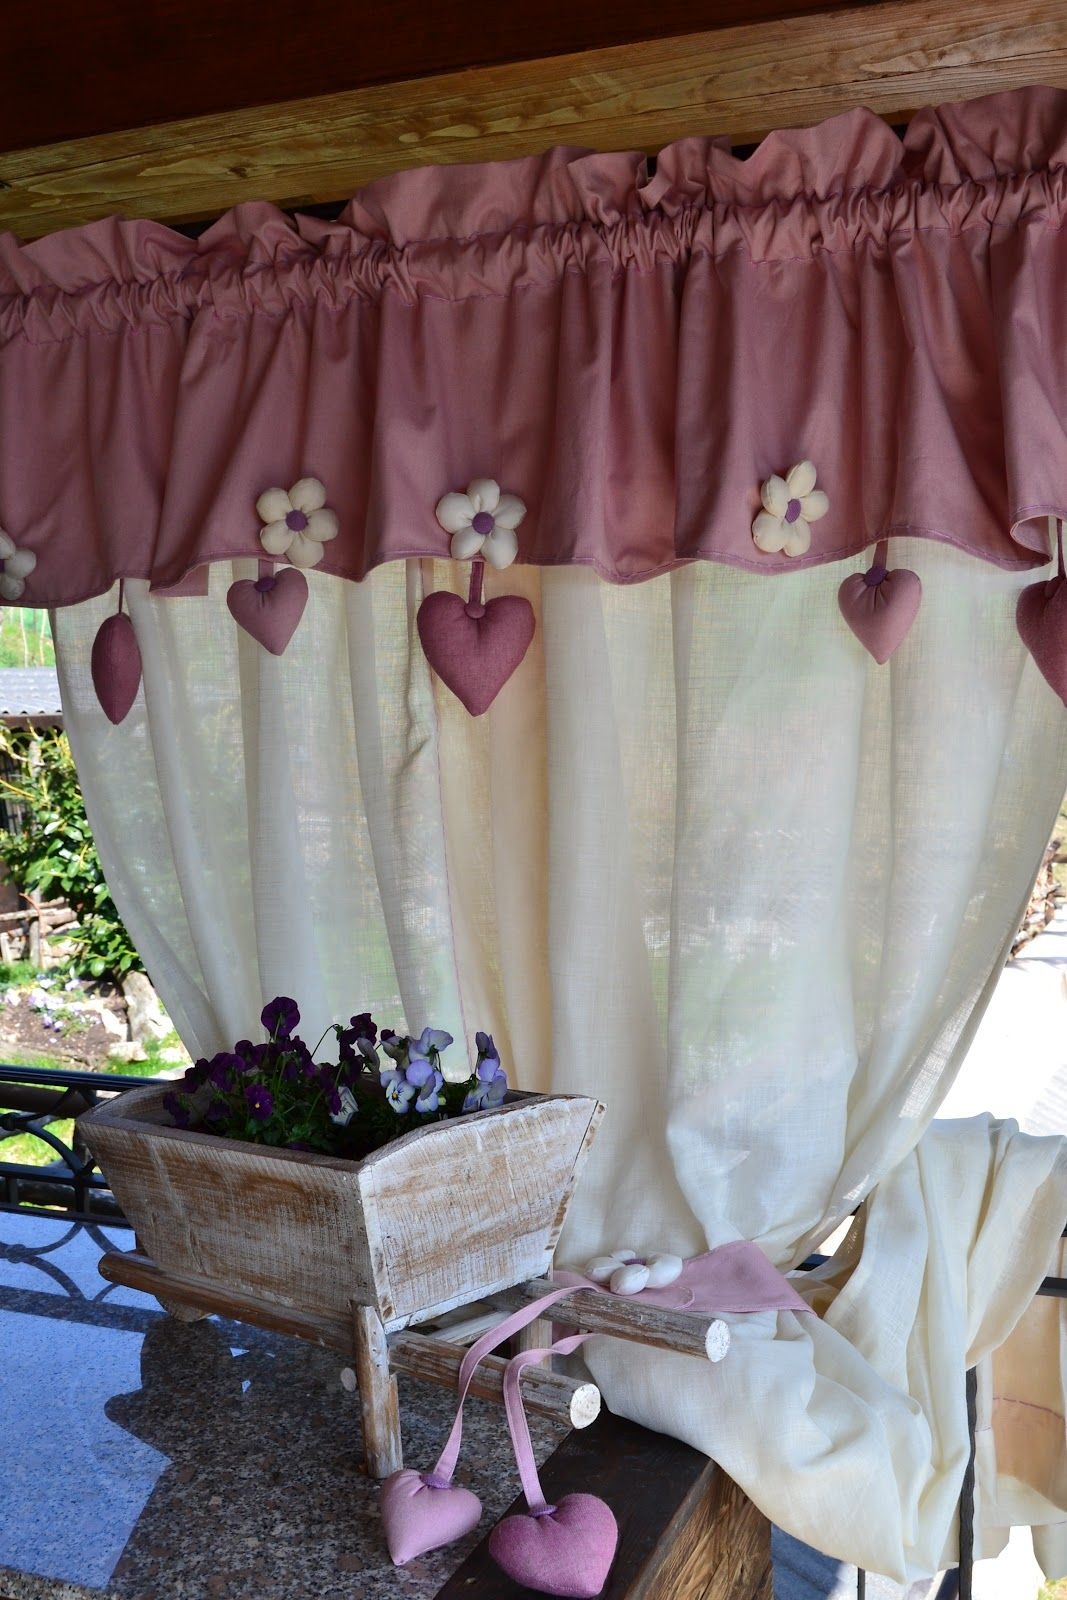 Tende Cucina Shabby Fai Da Te Pin Di Mshmsh Msh Su Shabby Chic Diy Curtains Kitchen Curtains